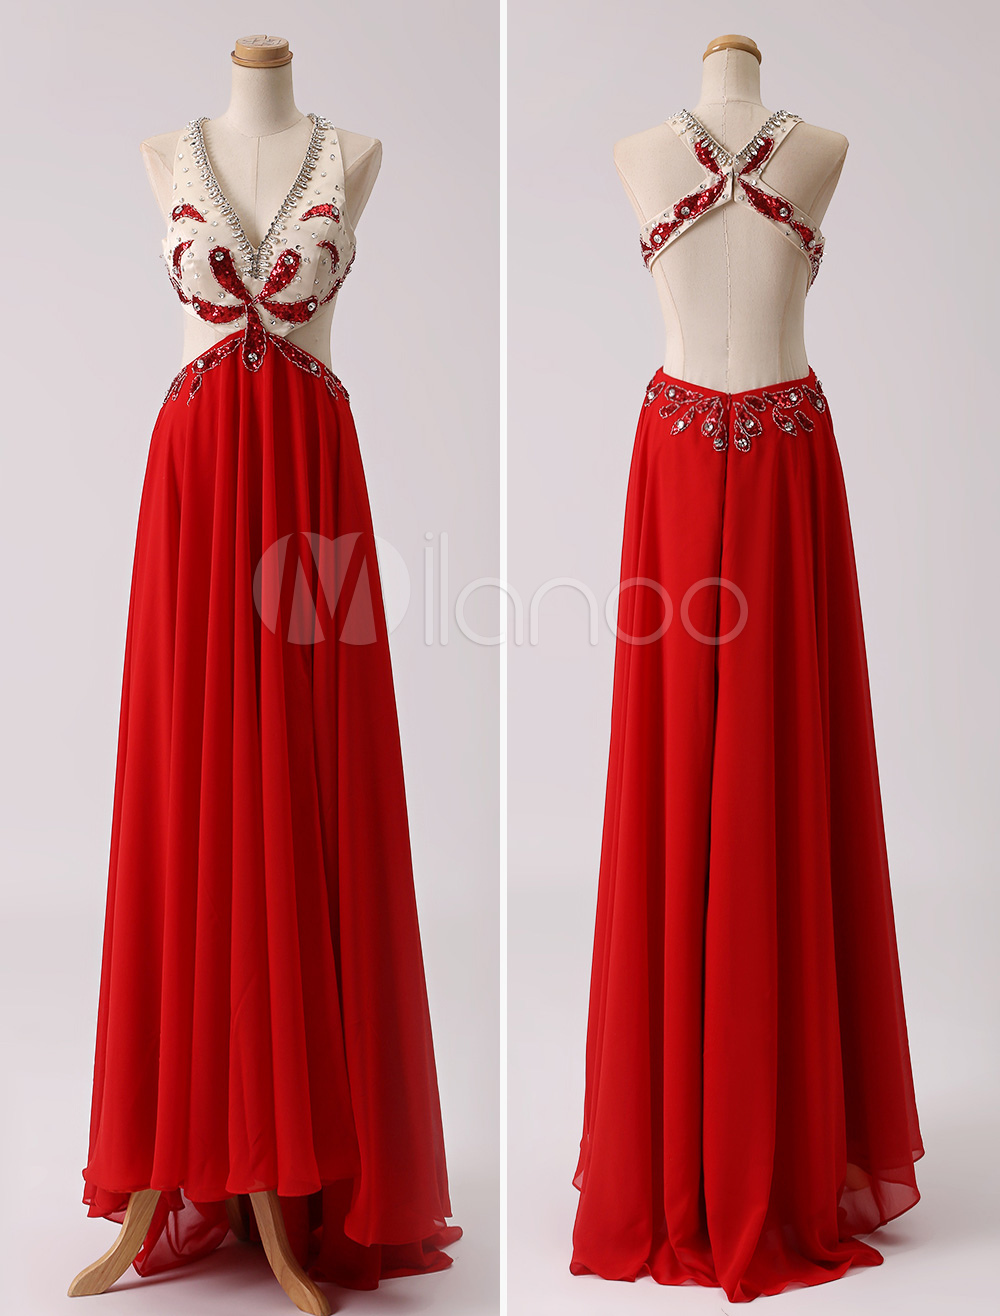 Long Red Chiffon Cut Out Rhinestone Prom Dress With Open Back (Wedding Prom Dresses) photo